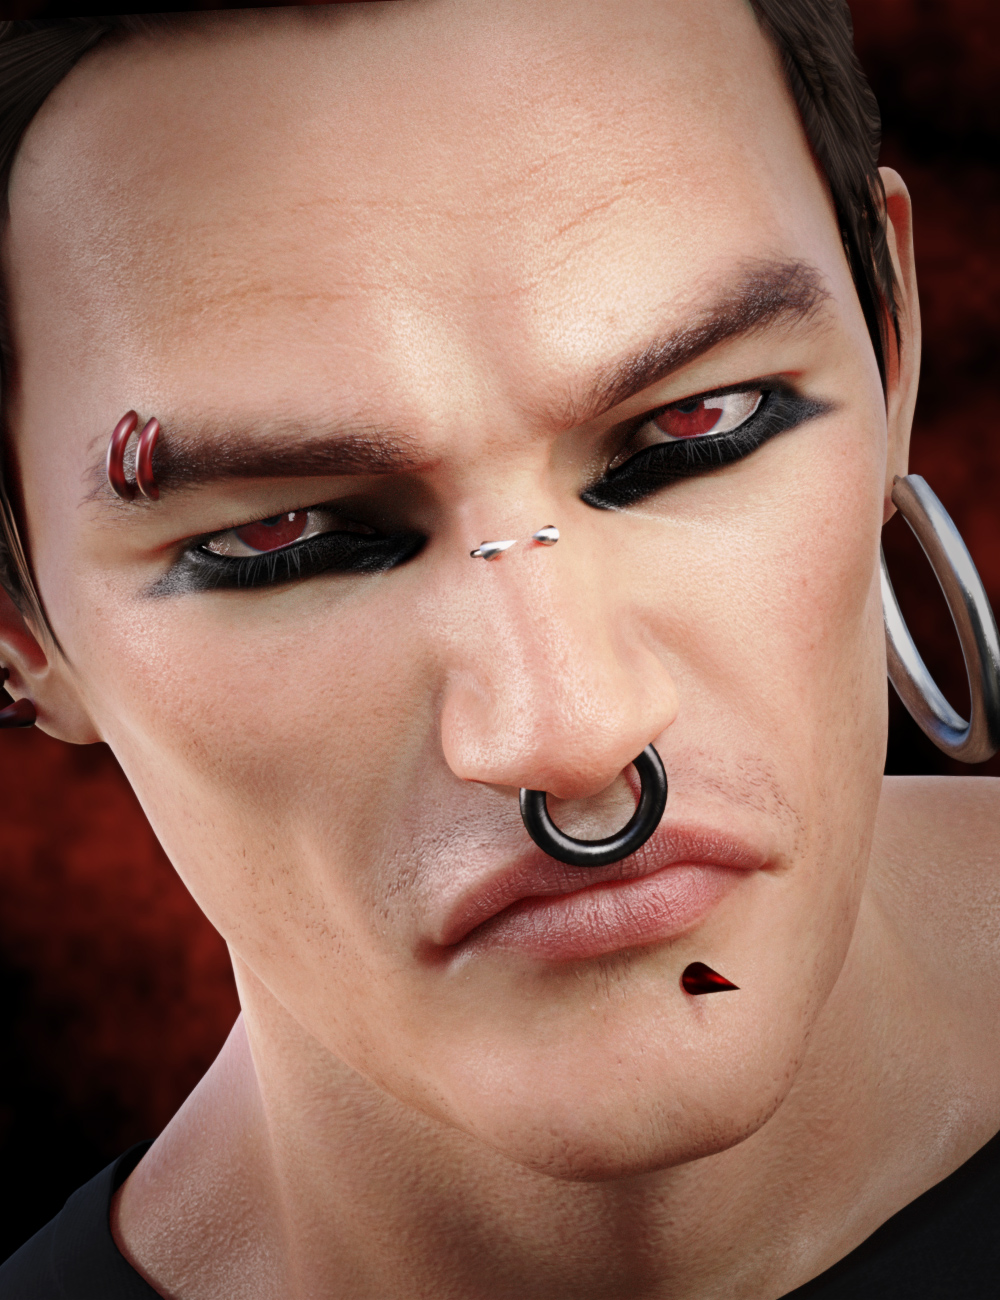 Devilish Piercing for Genesis 8 and 8.1 Males by: Neikdian, 3D Models by Daz 3D